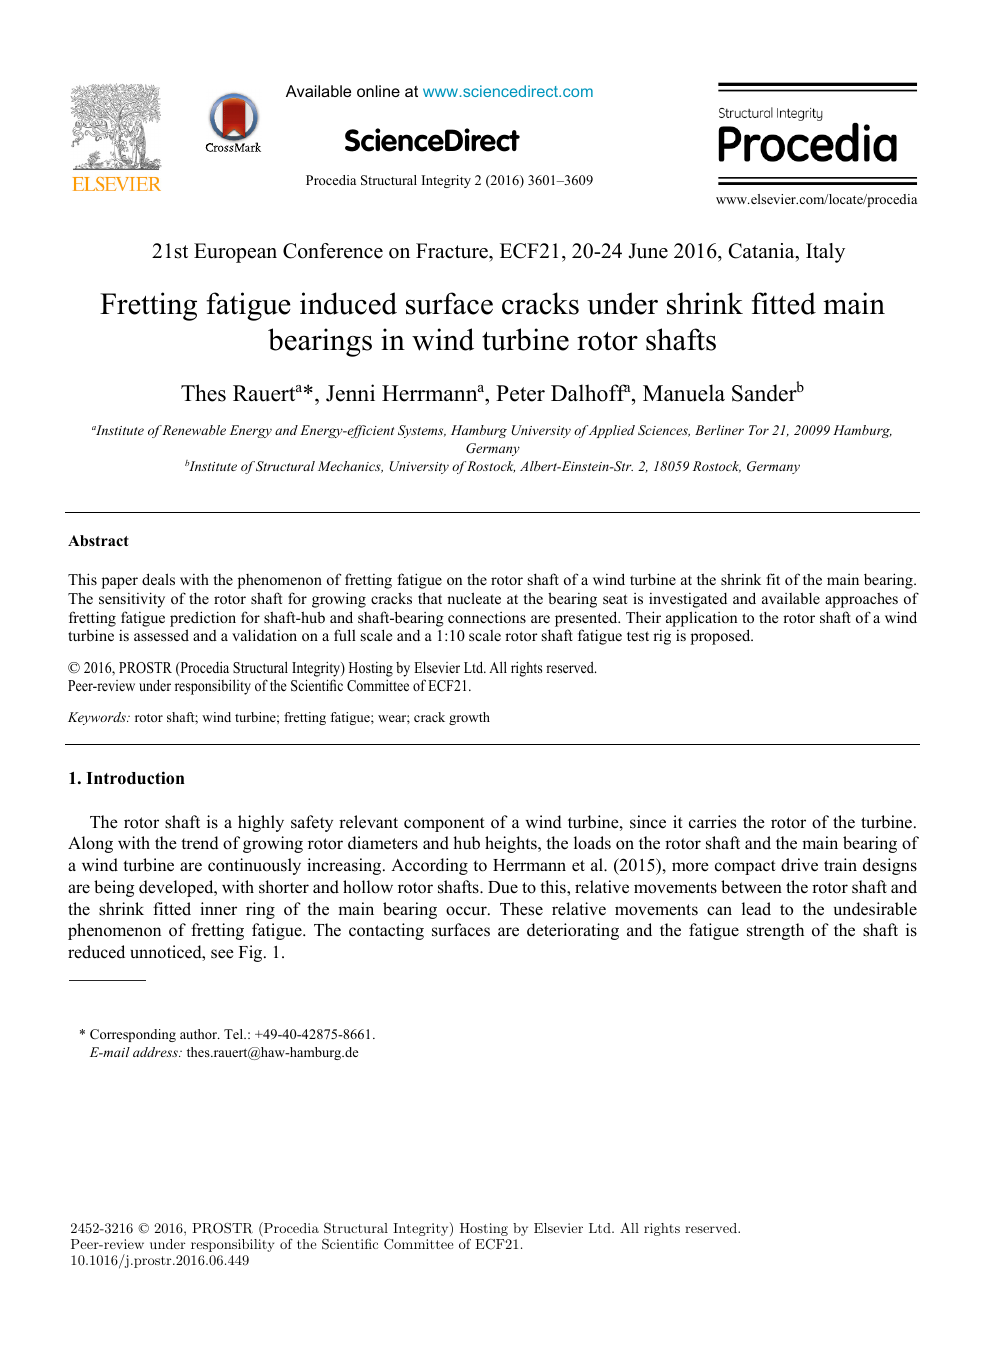 thesis on fretting fatigue in railway axles